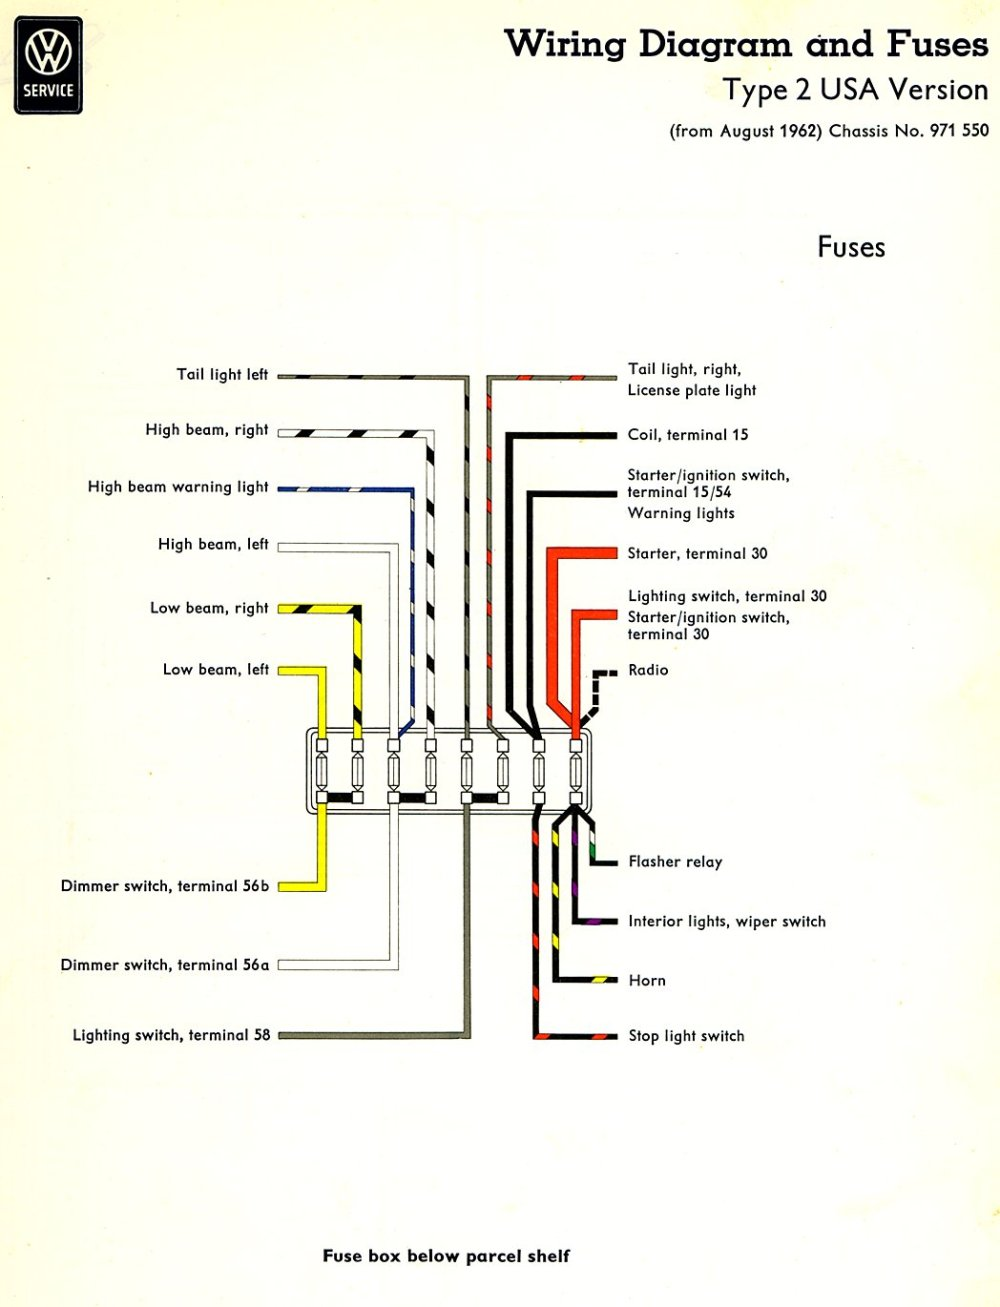 medium resolution of thesamba com type 2 wiring diagrams1979 vw bus fuse box back 20